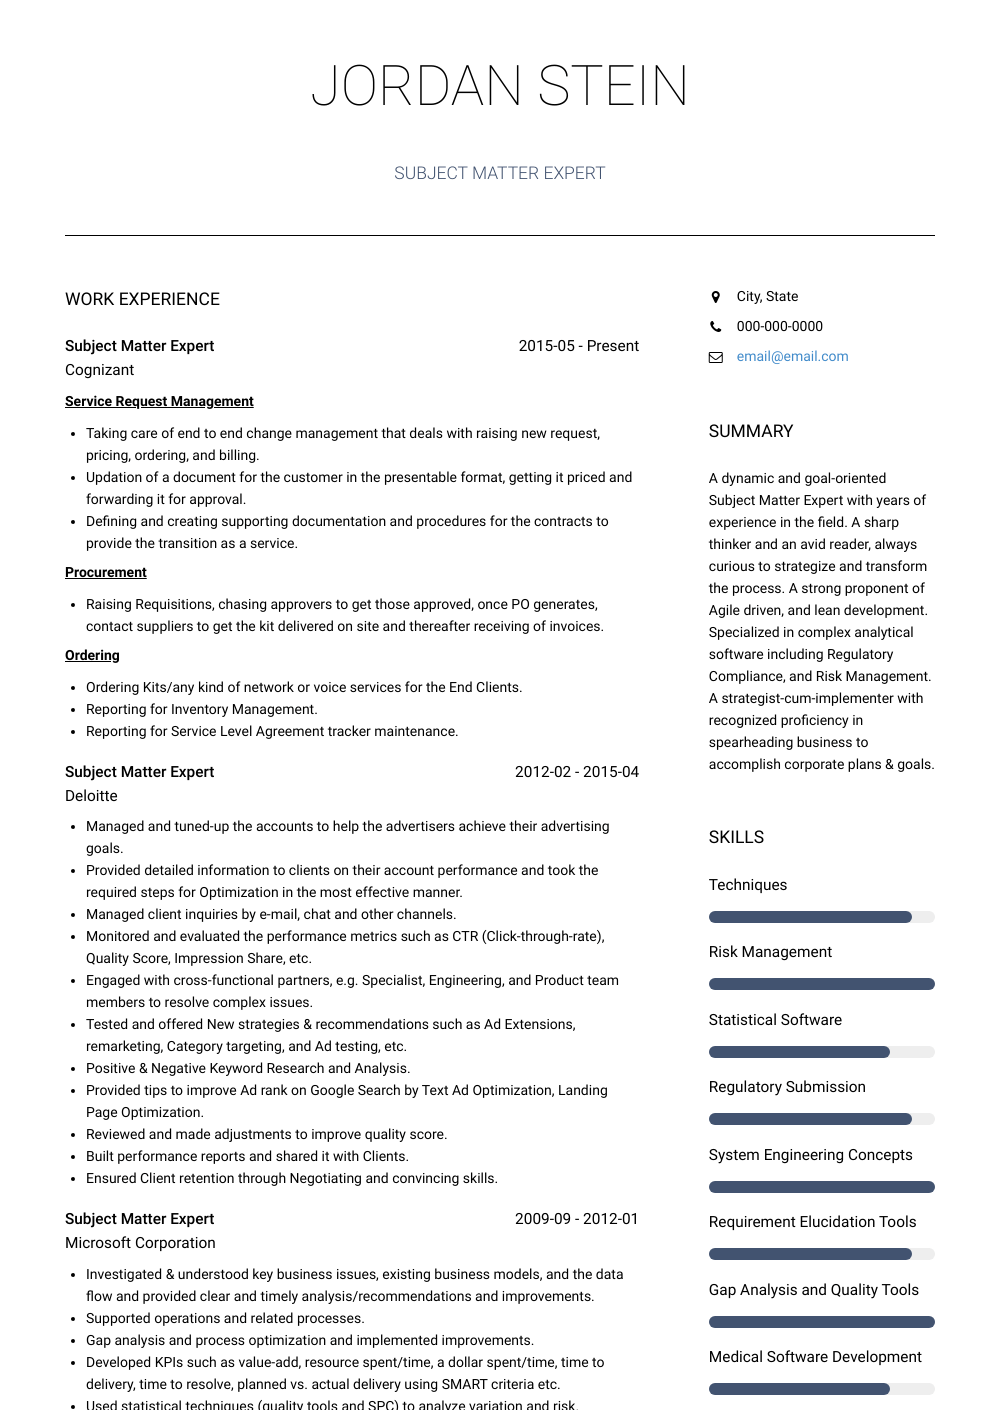 Subject Matter Expert  Resume